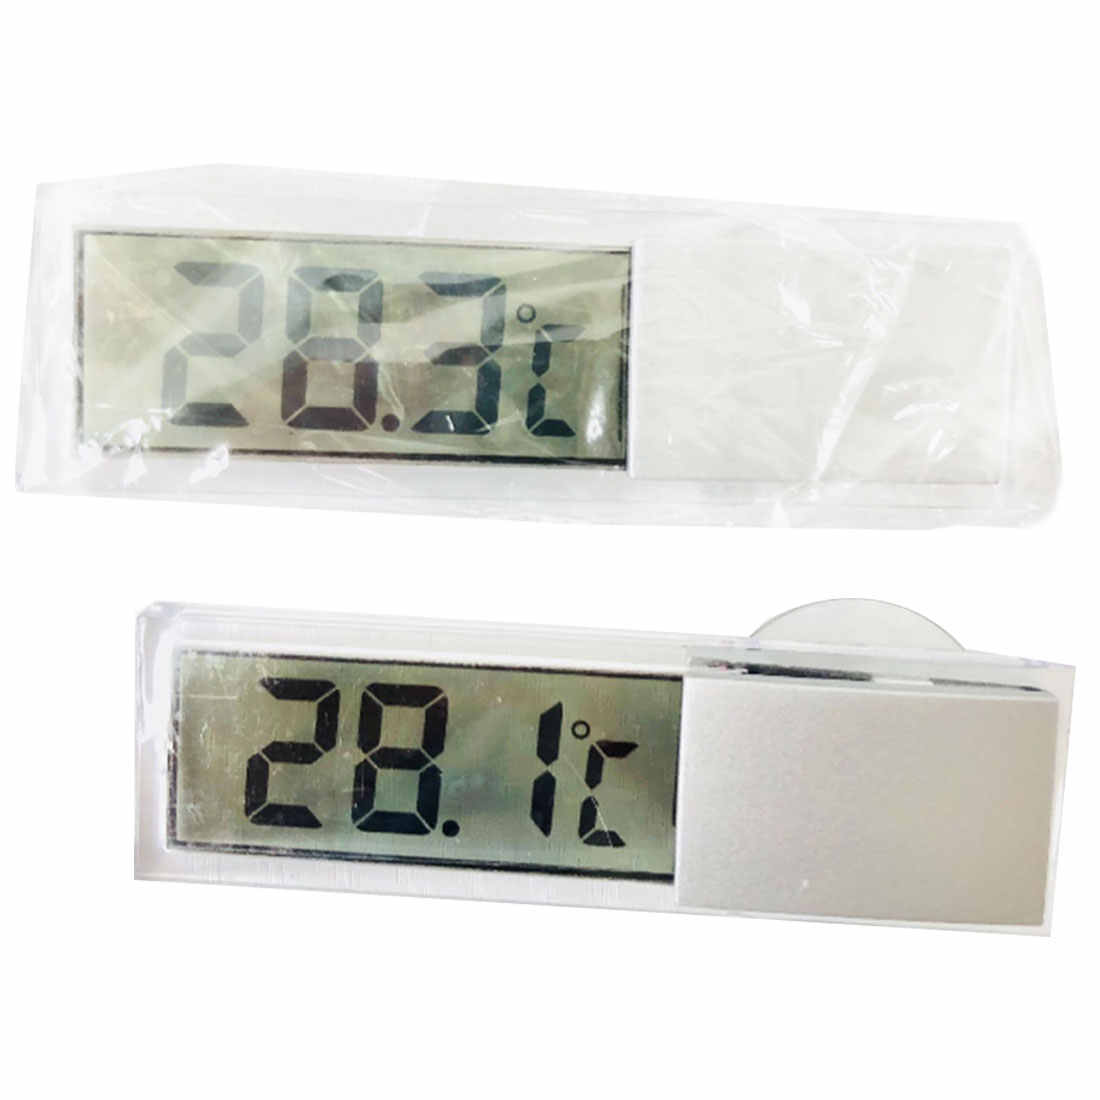 -20-110C   Weather Station LCD Digital Car Thermometer Thermostat Timer Clock Temperature Instruments Sensor Wall Type Meter